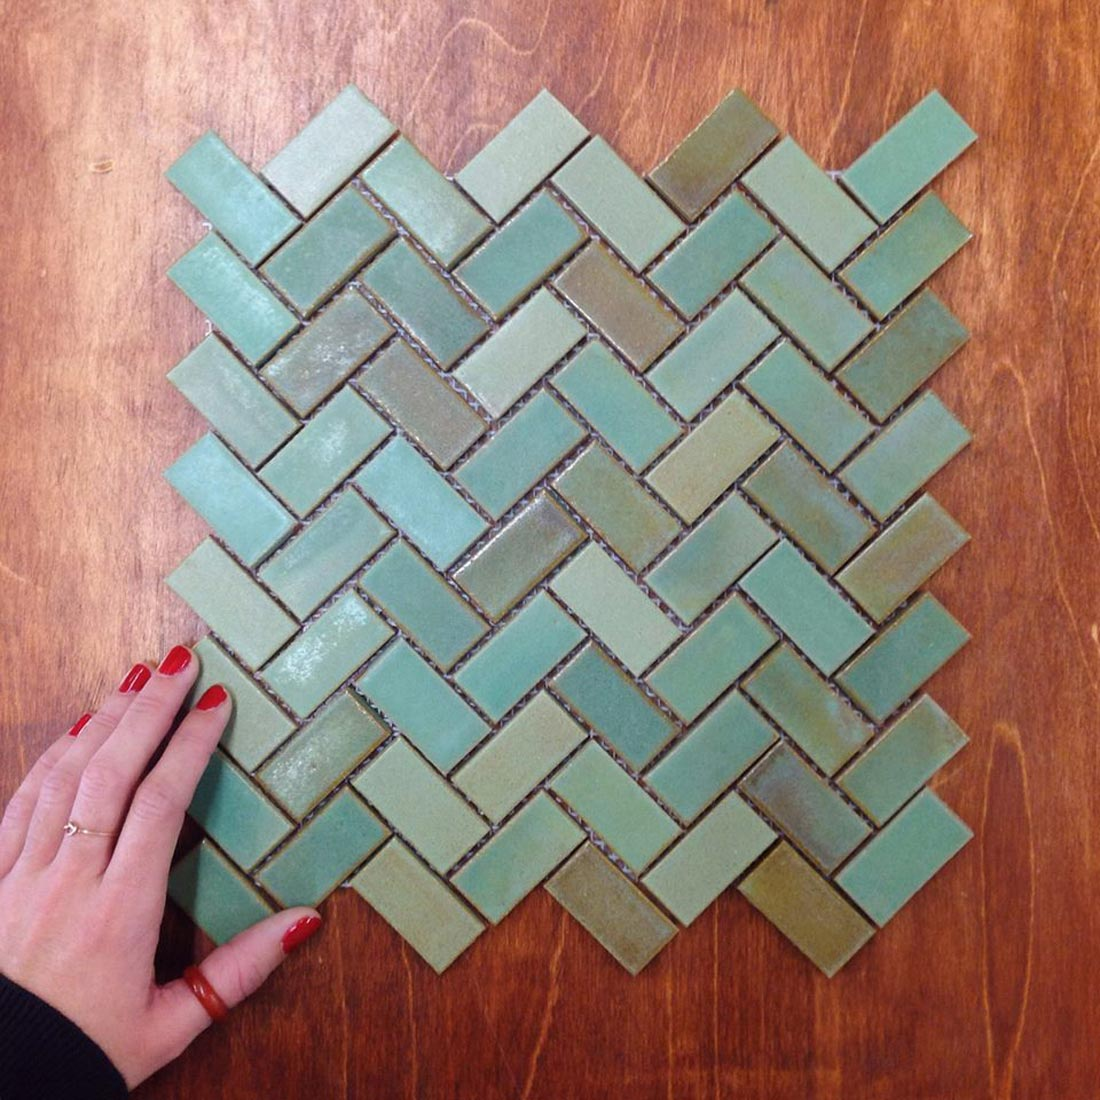 Why People Are Falling In Love With Herringbone Tile